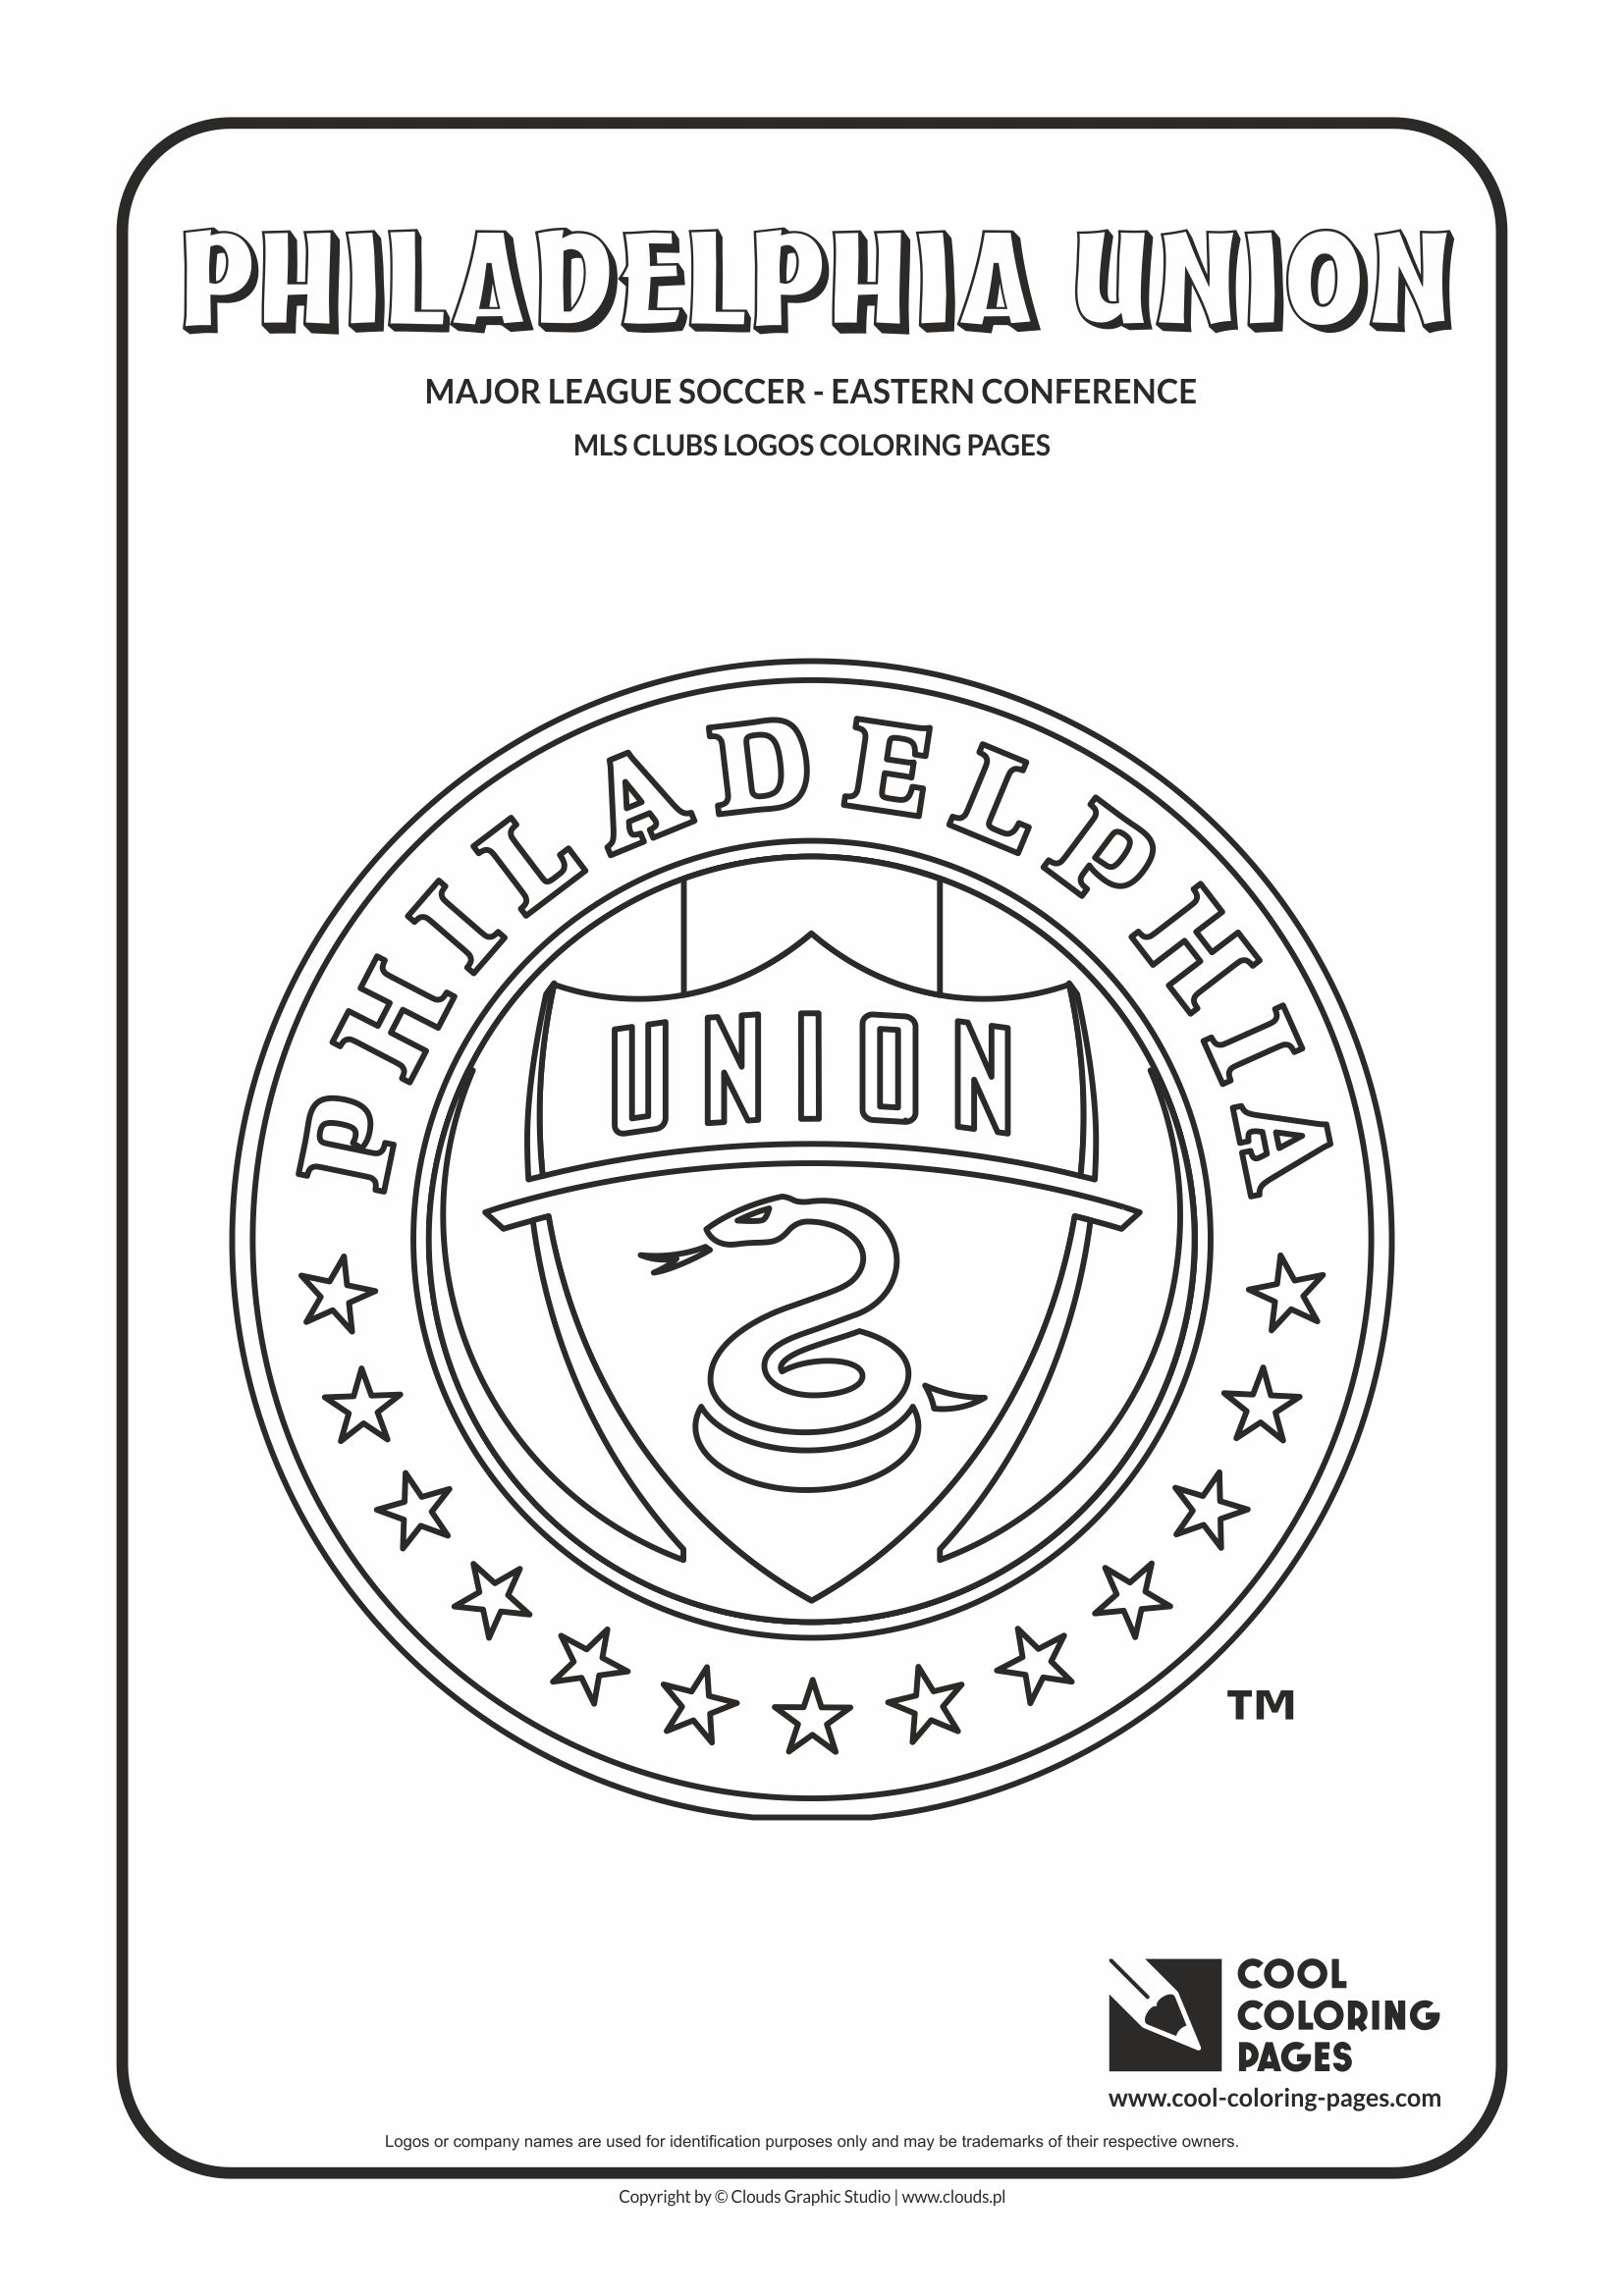 Cool Coloring Pages - Major League Soccer Logos - Eastern Conference / Philadelphia Union logo / Coloring page with Philadelphia Union logo